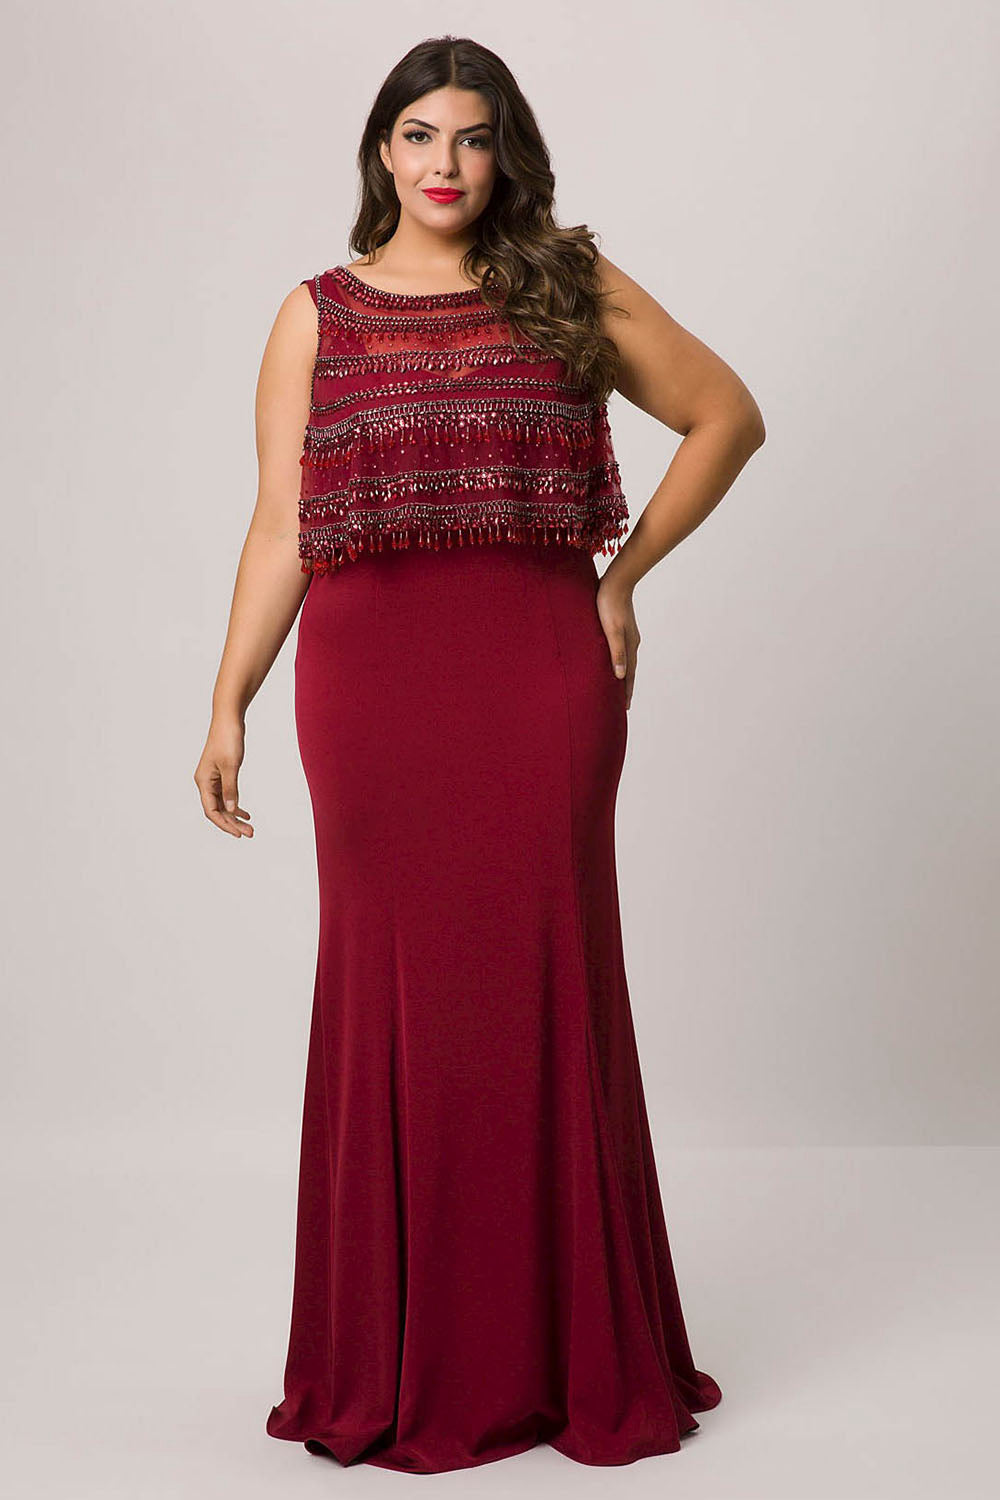 Sheath/Column Scoop Neck Plus Size Prom Dress with Beading